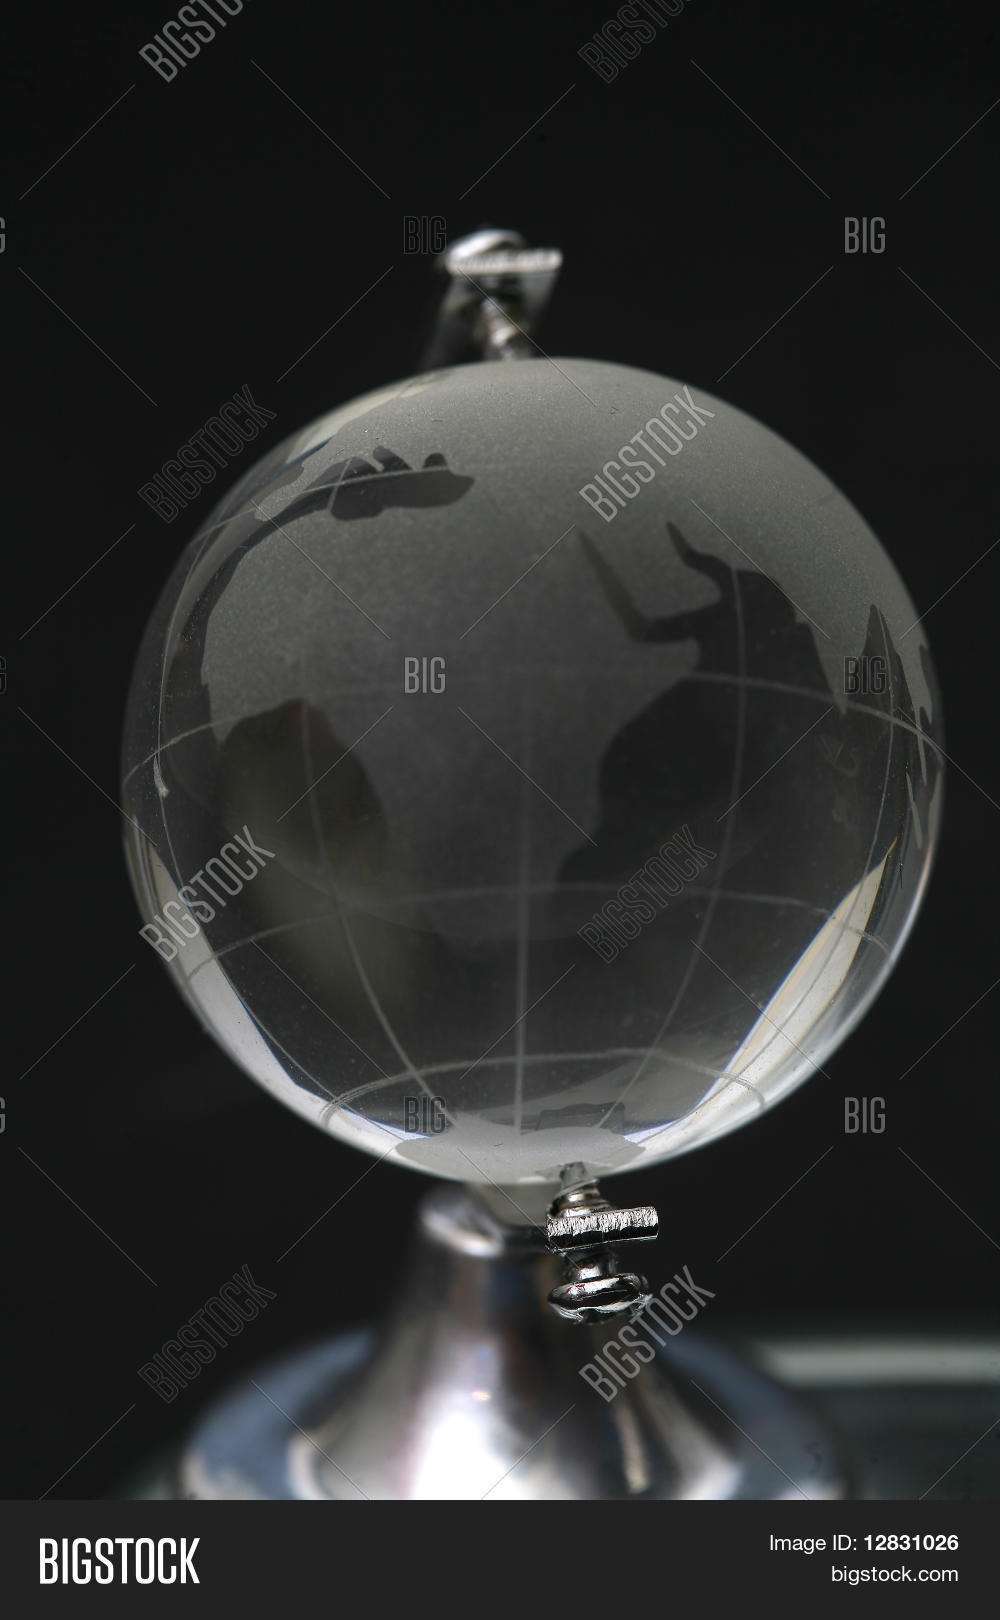 World Background Image Free Trial